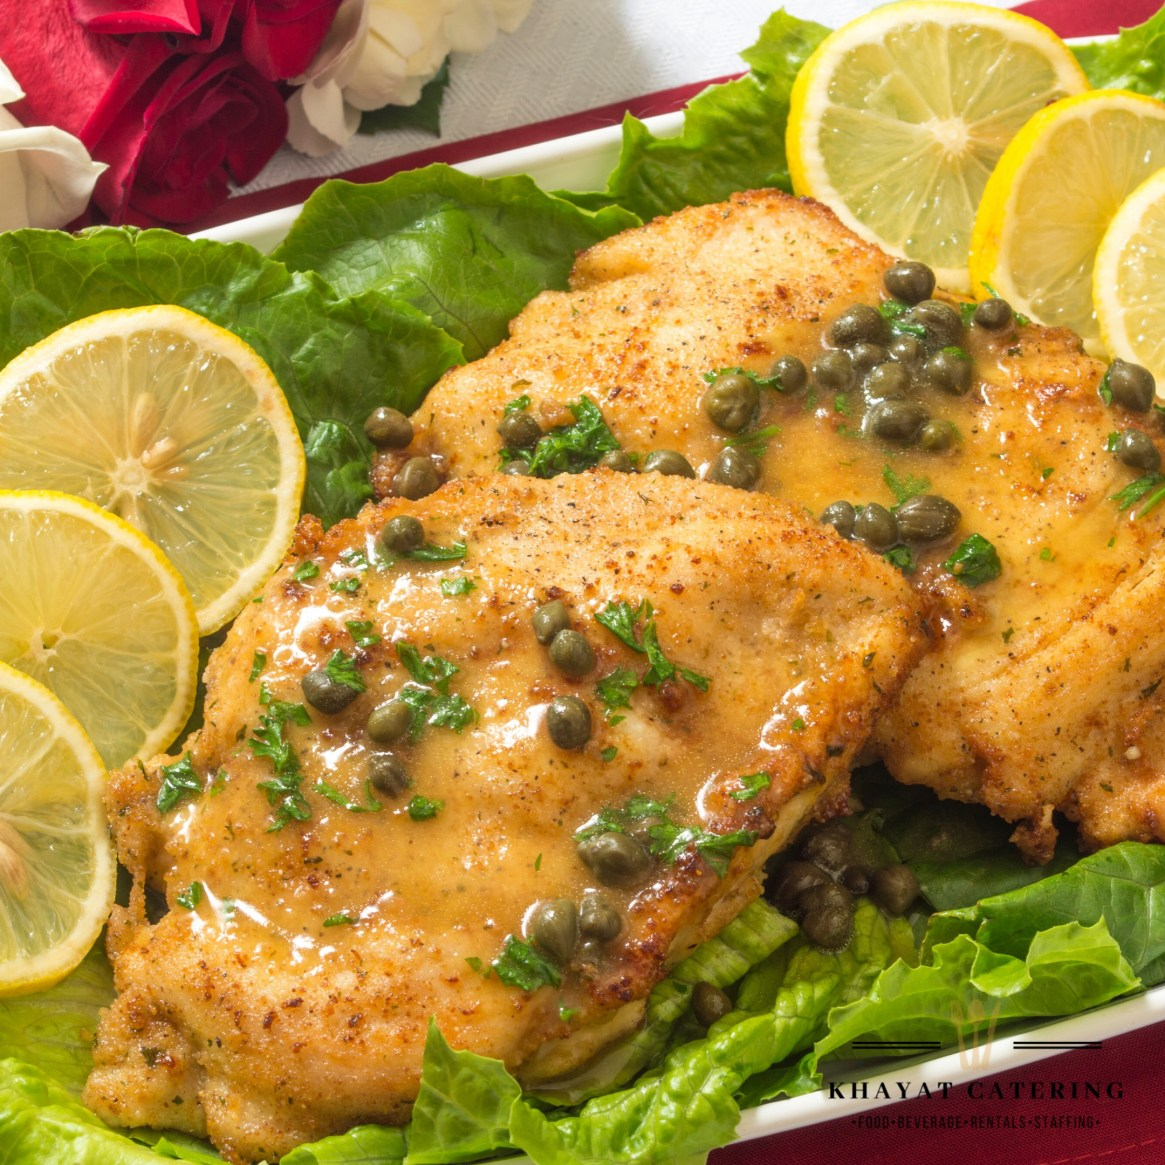 Khayat Catering chicken piccata